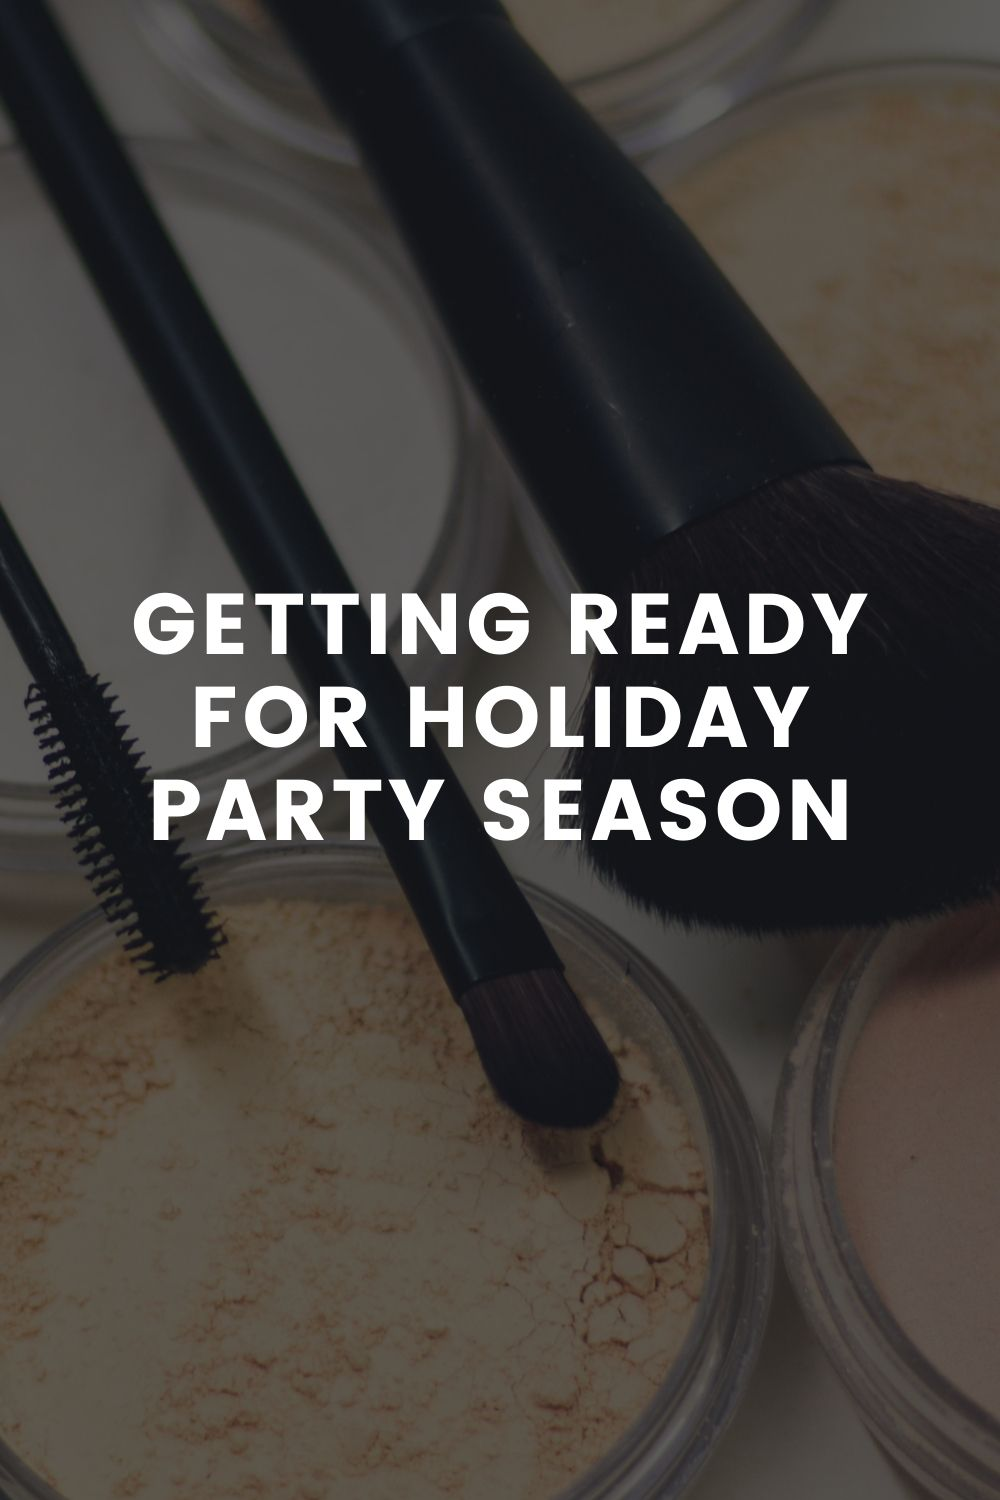 Getting Ready for Holiday Party Season